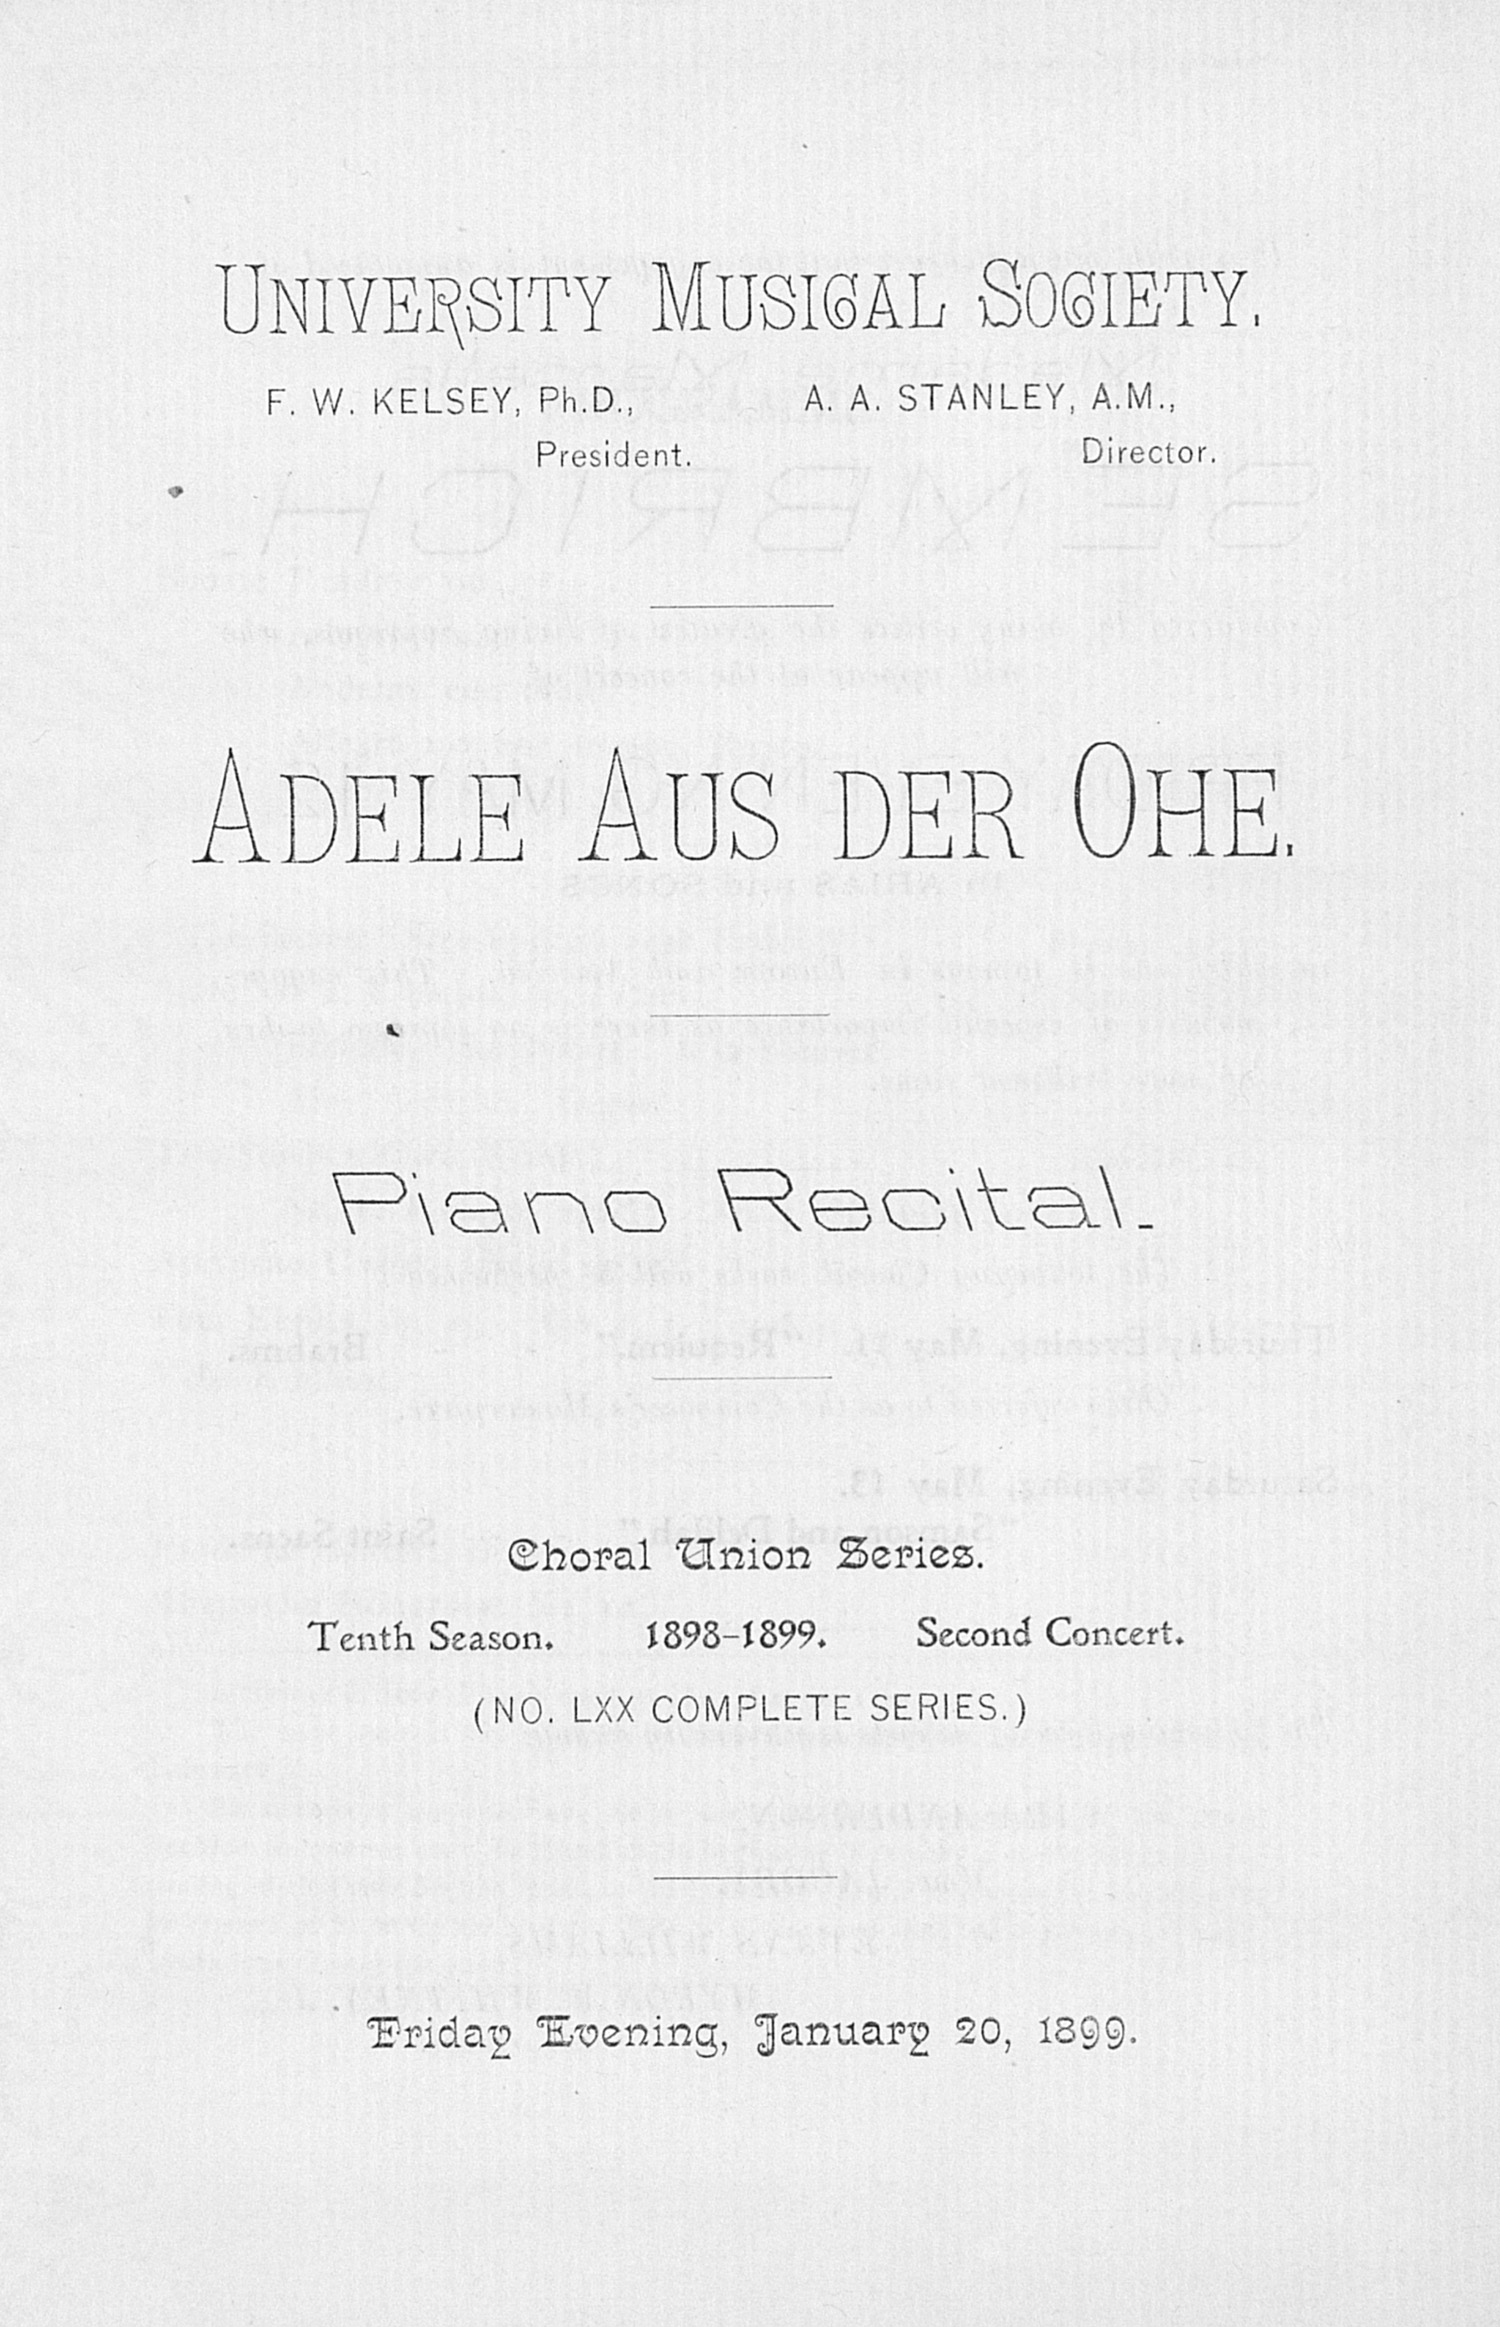 UMS Concert Program, January 20, 1899: Piano Recital -- Adele Aus Der Ohe image